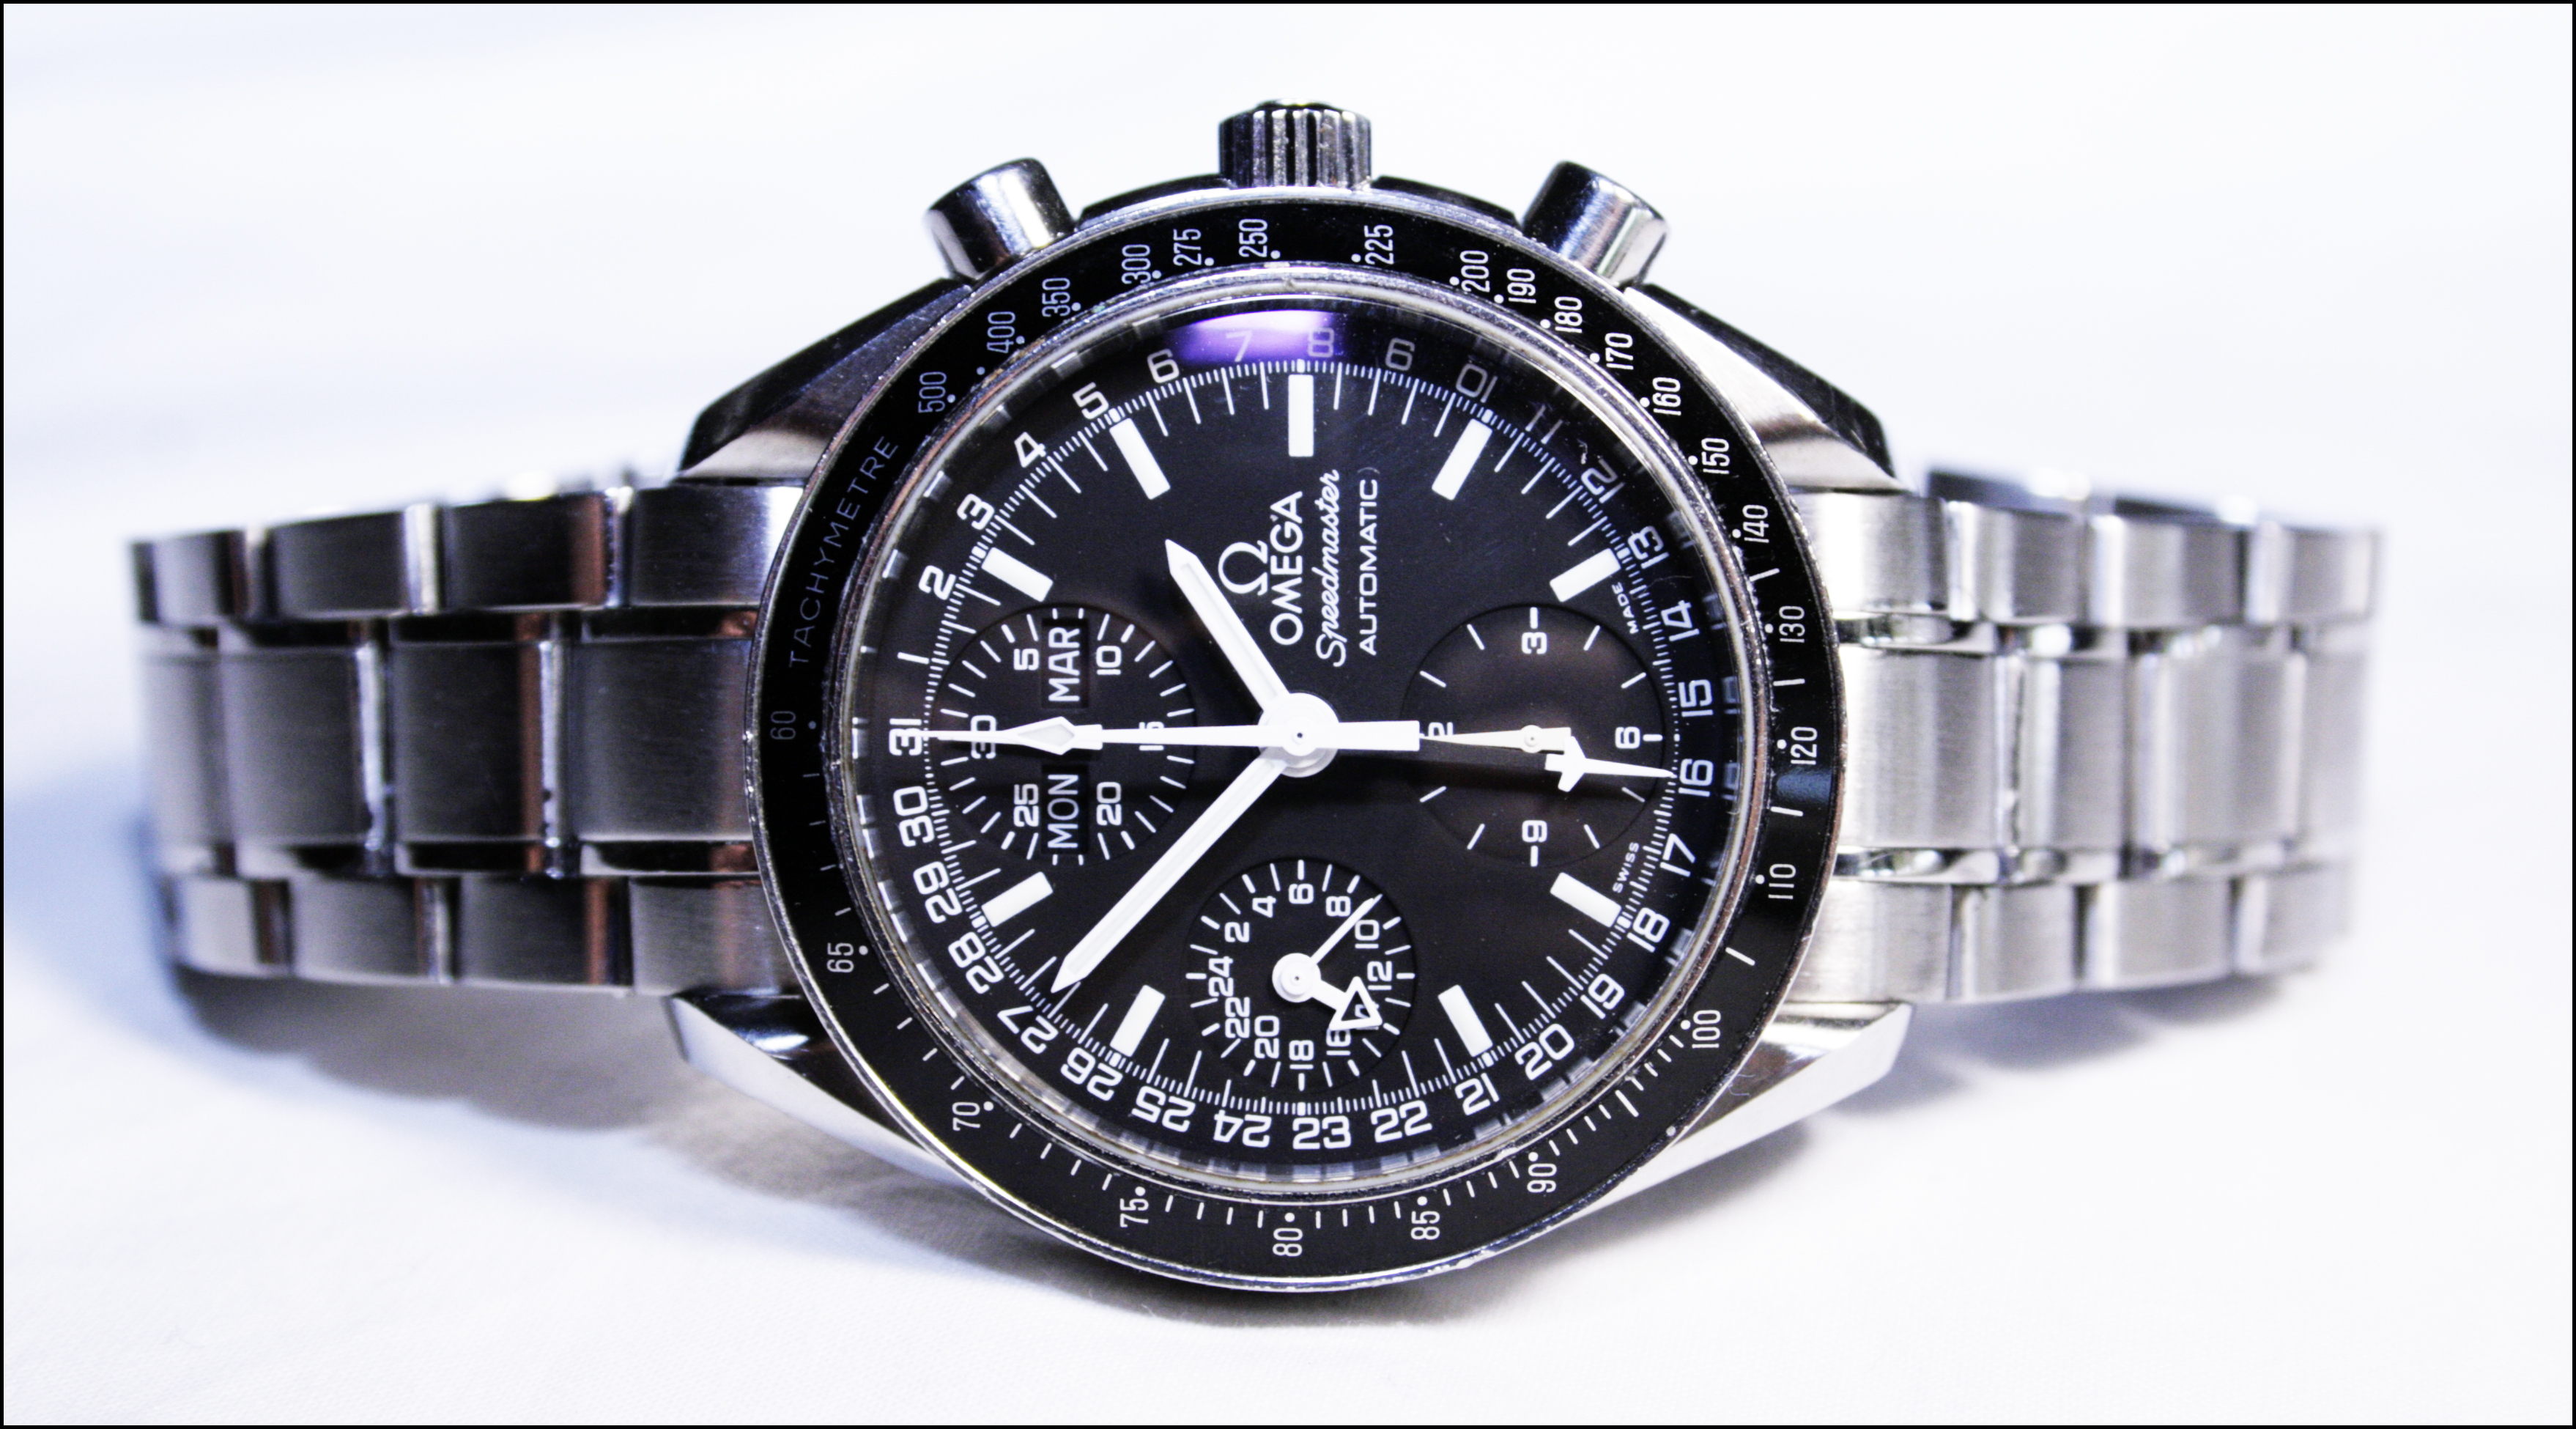 carrera speedmaster clocks spare omega and or anything tag old a model we heuer seamaster watch mechanical buying watches cougar recent for high ll vintage almost not quality working buy even